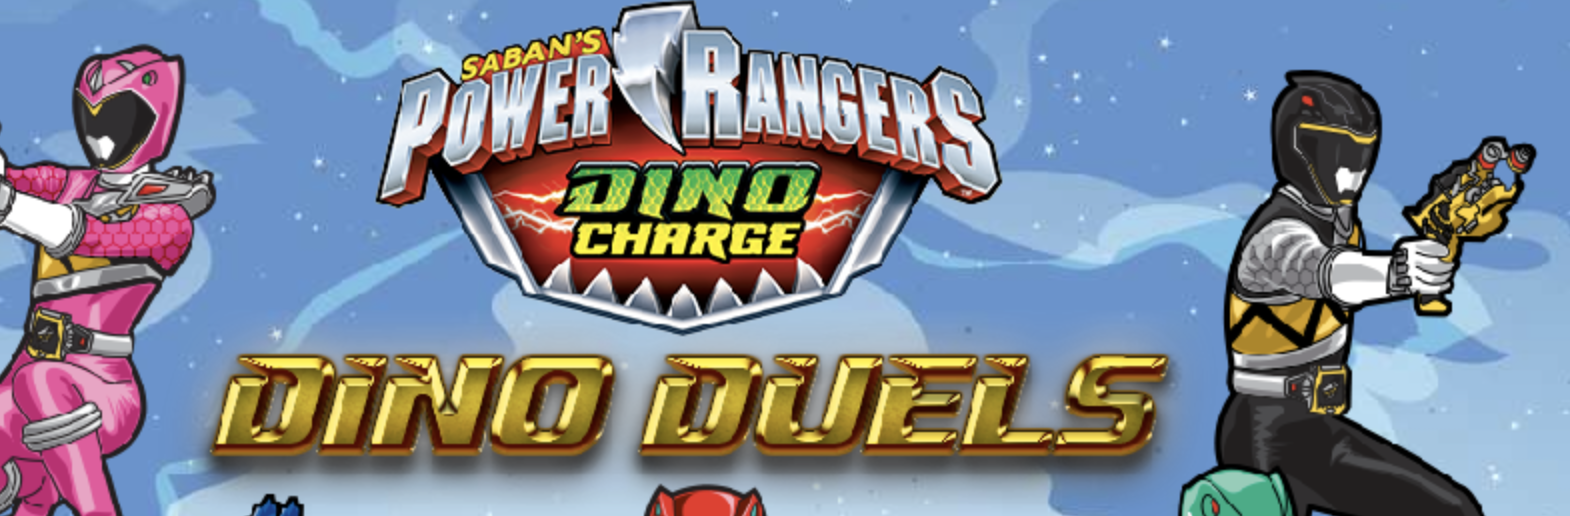 Play Power Rangers Dino Duels Game in